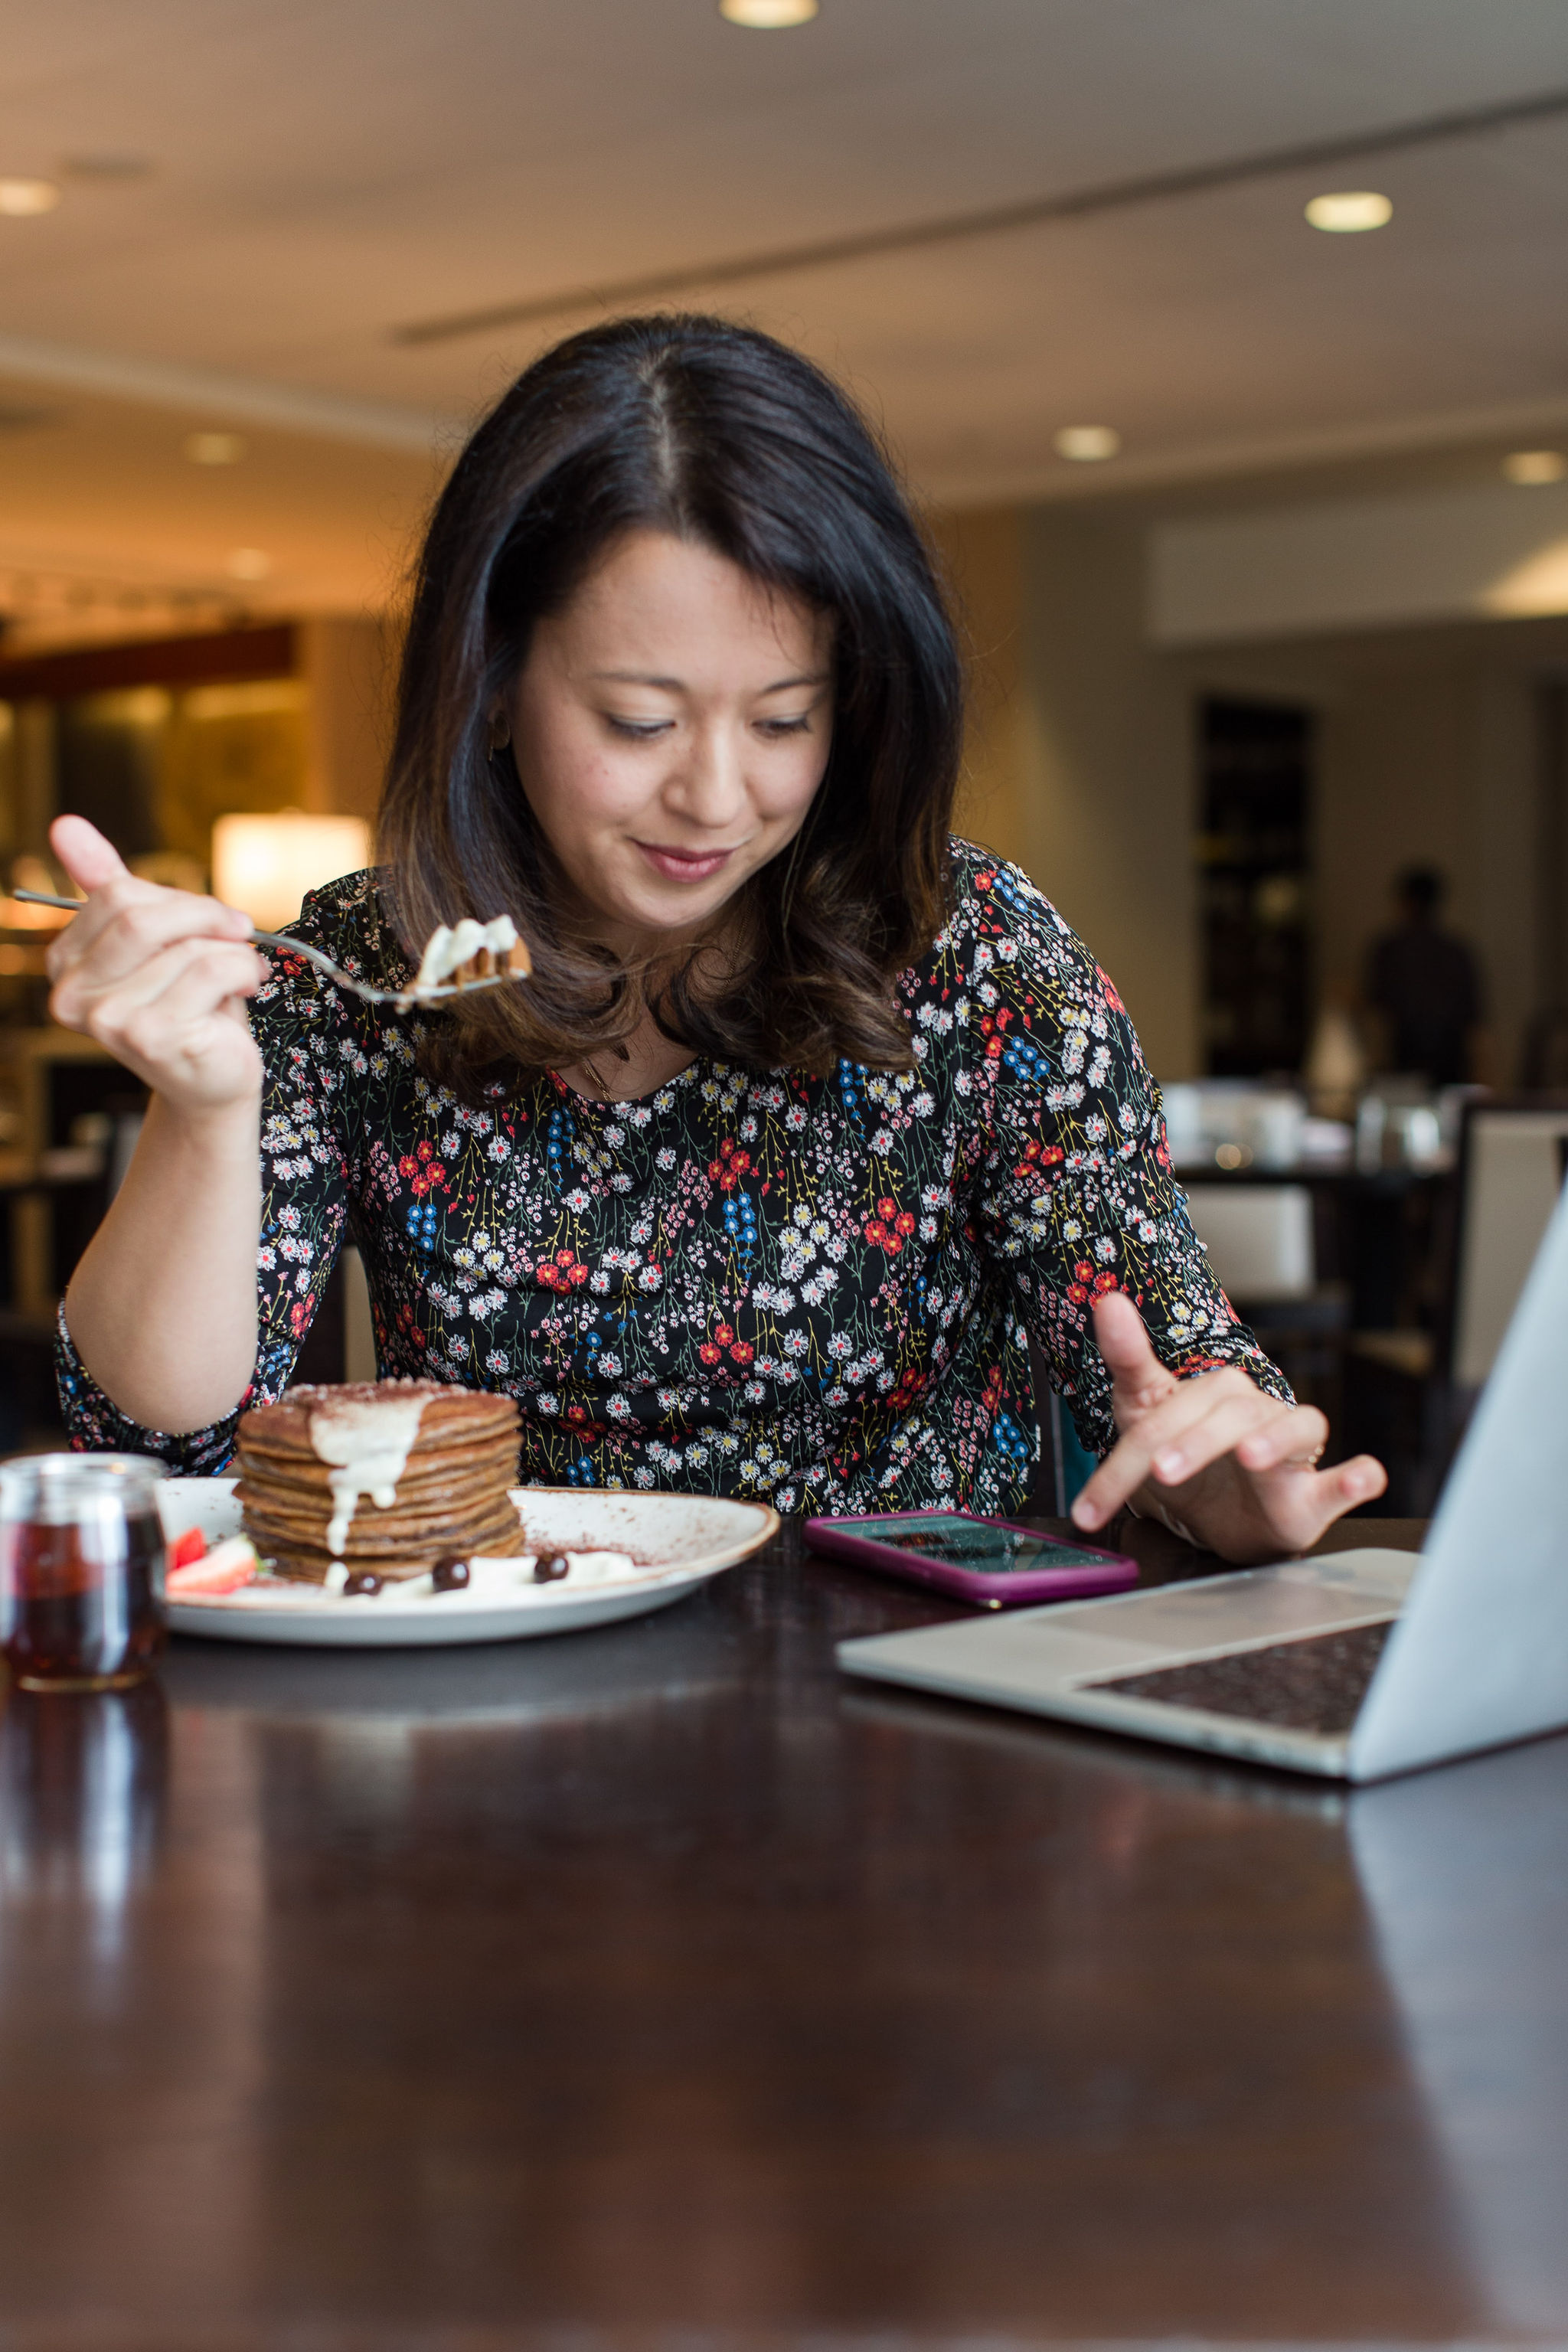 Working and eating brunch at Eques Restaurant in the Hyatt Regency Bellevue Washington